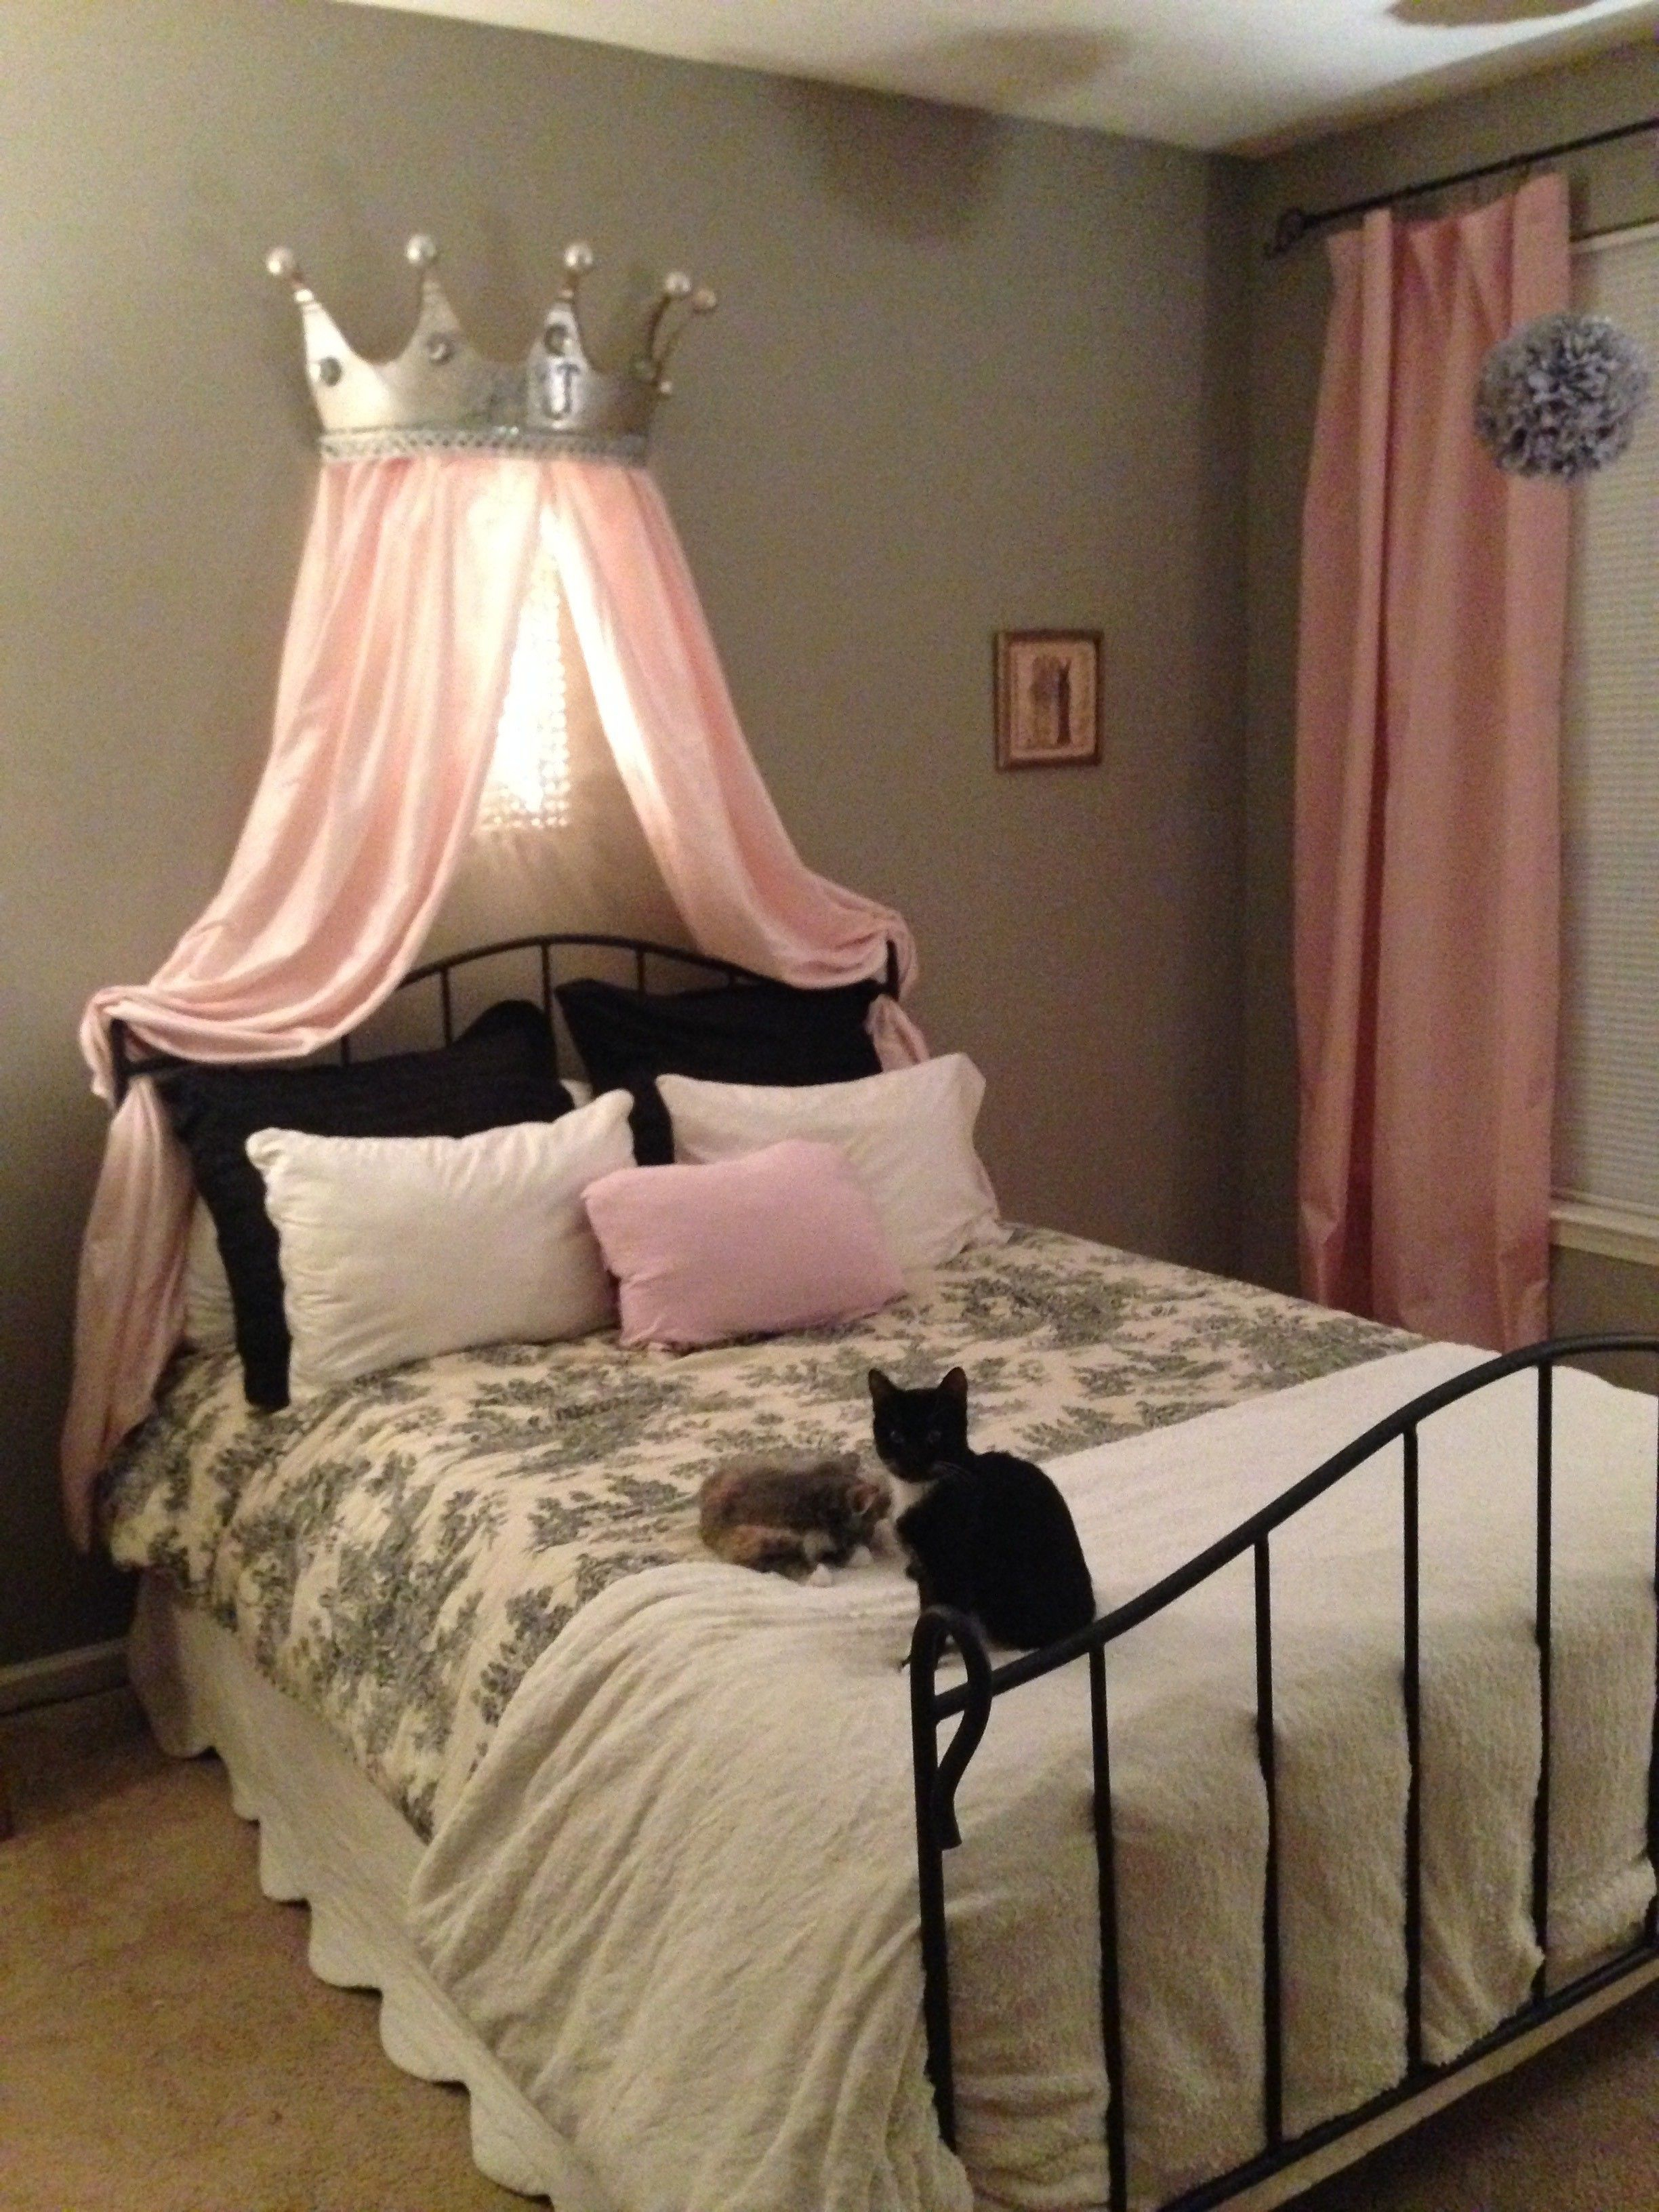 Mop Bucket Bed Crown House Ideas Bed Crown Canopy Bedroom Girl